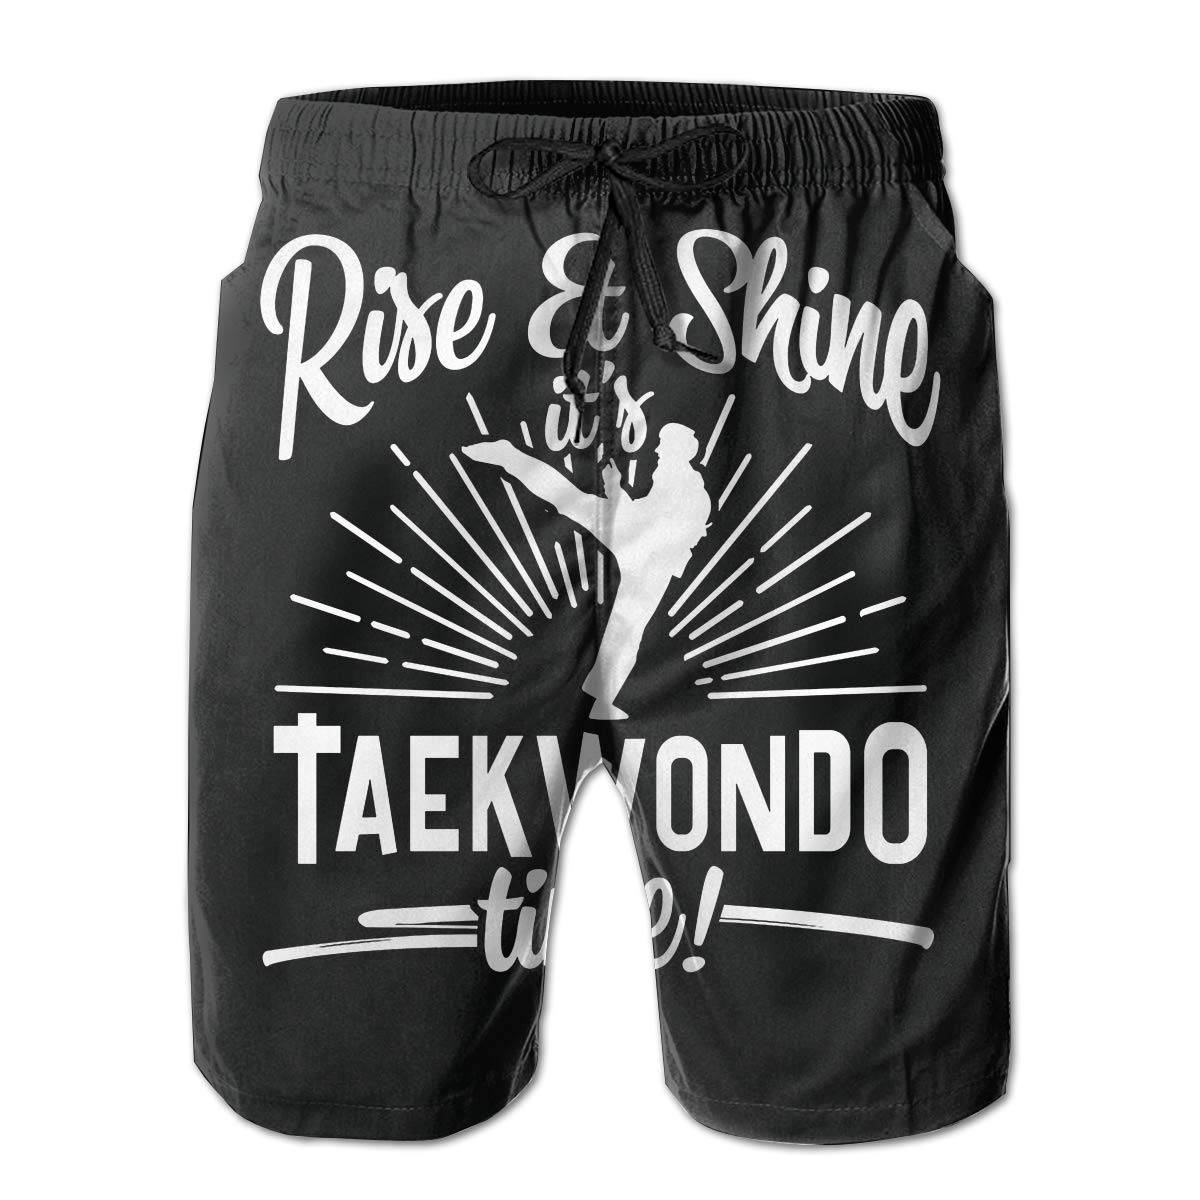 JIA LI Mens Board Shorts Taekwondo Summer Printed Quick-Dry Swim Trunks Beach Shorts